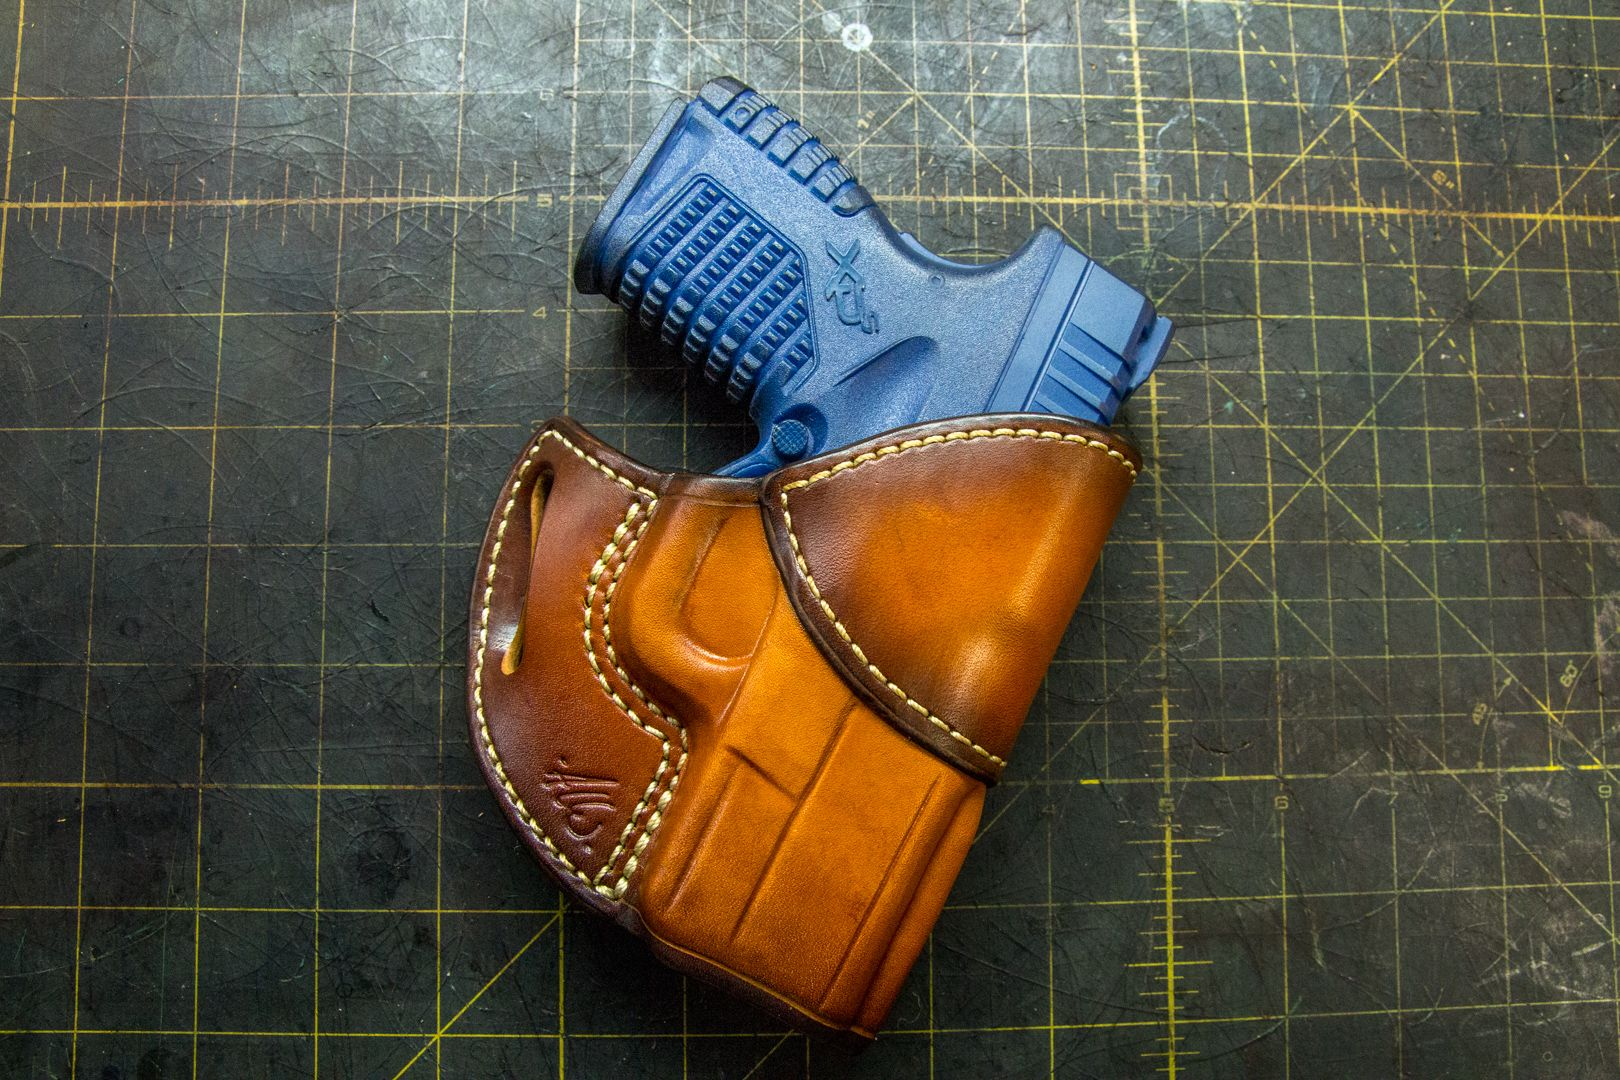 Leather Holster Pattern - Avenger style - for the Springfield XD-S